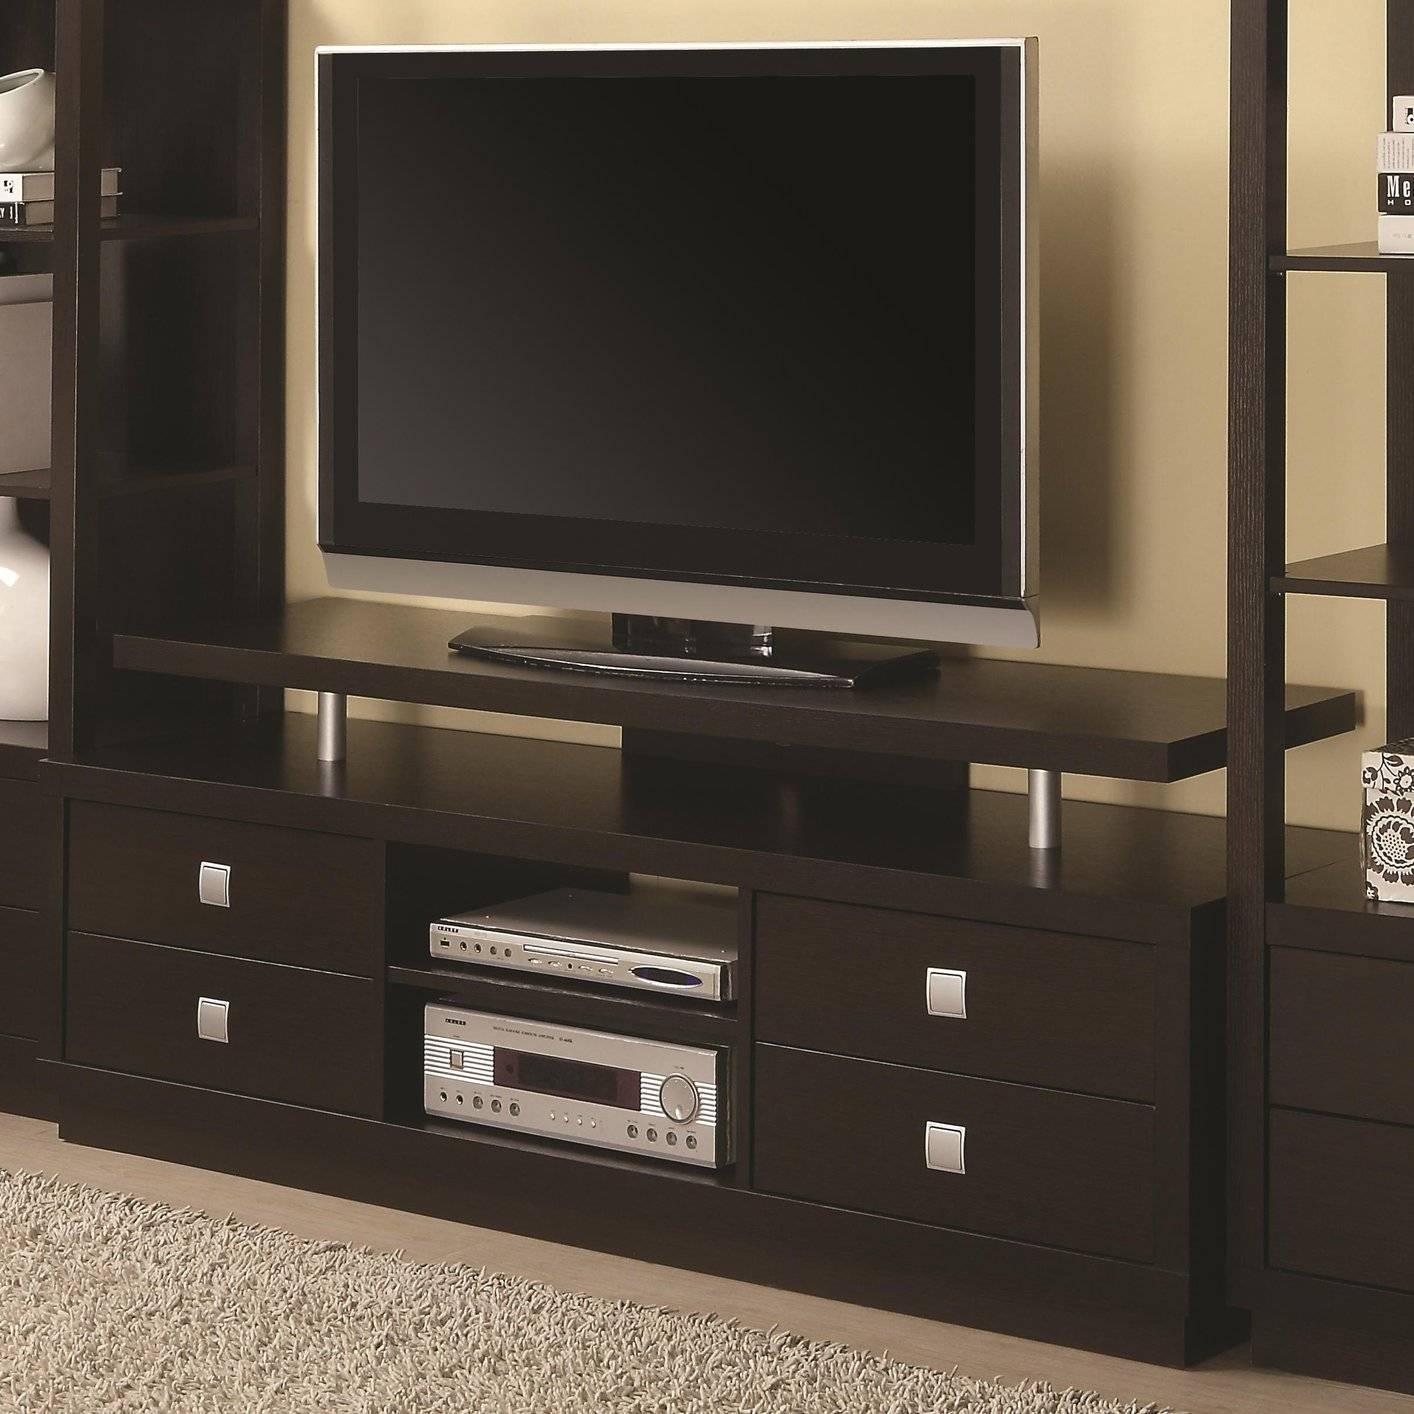 Brown Wood Tv Stand - Steal-A-Sofa Furniture Outlet Los Angeles Ca with regard to Wood Tv Entertainment Stands (Image 2 of 15)